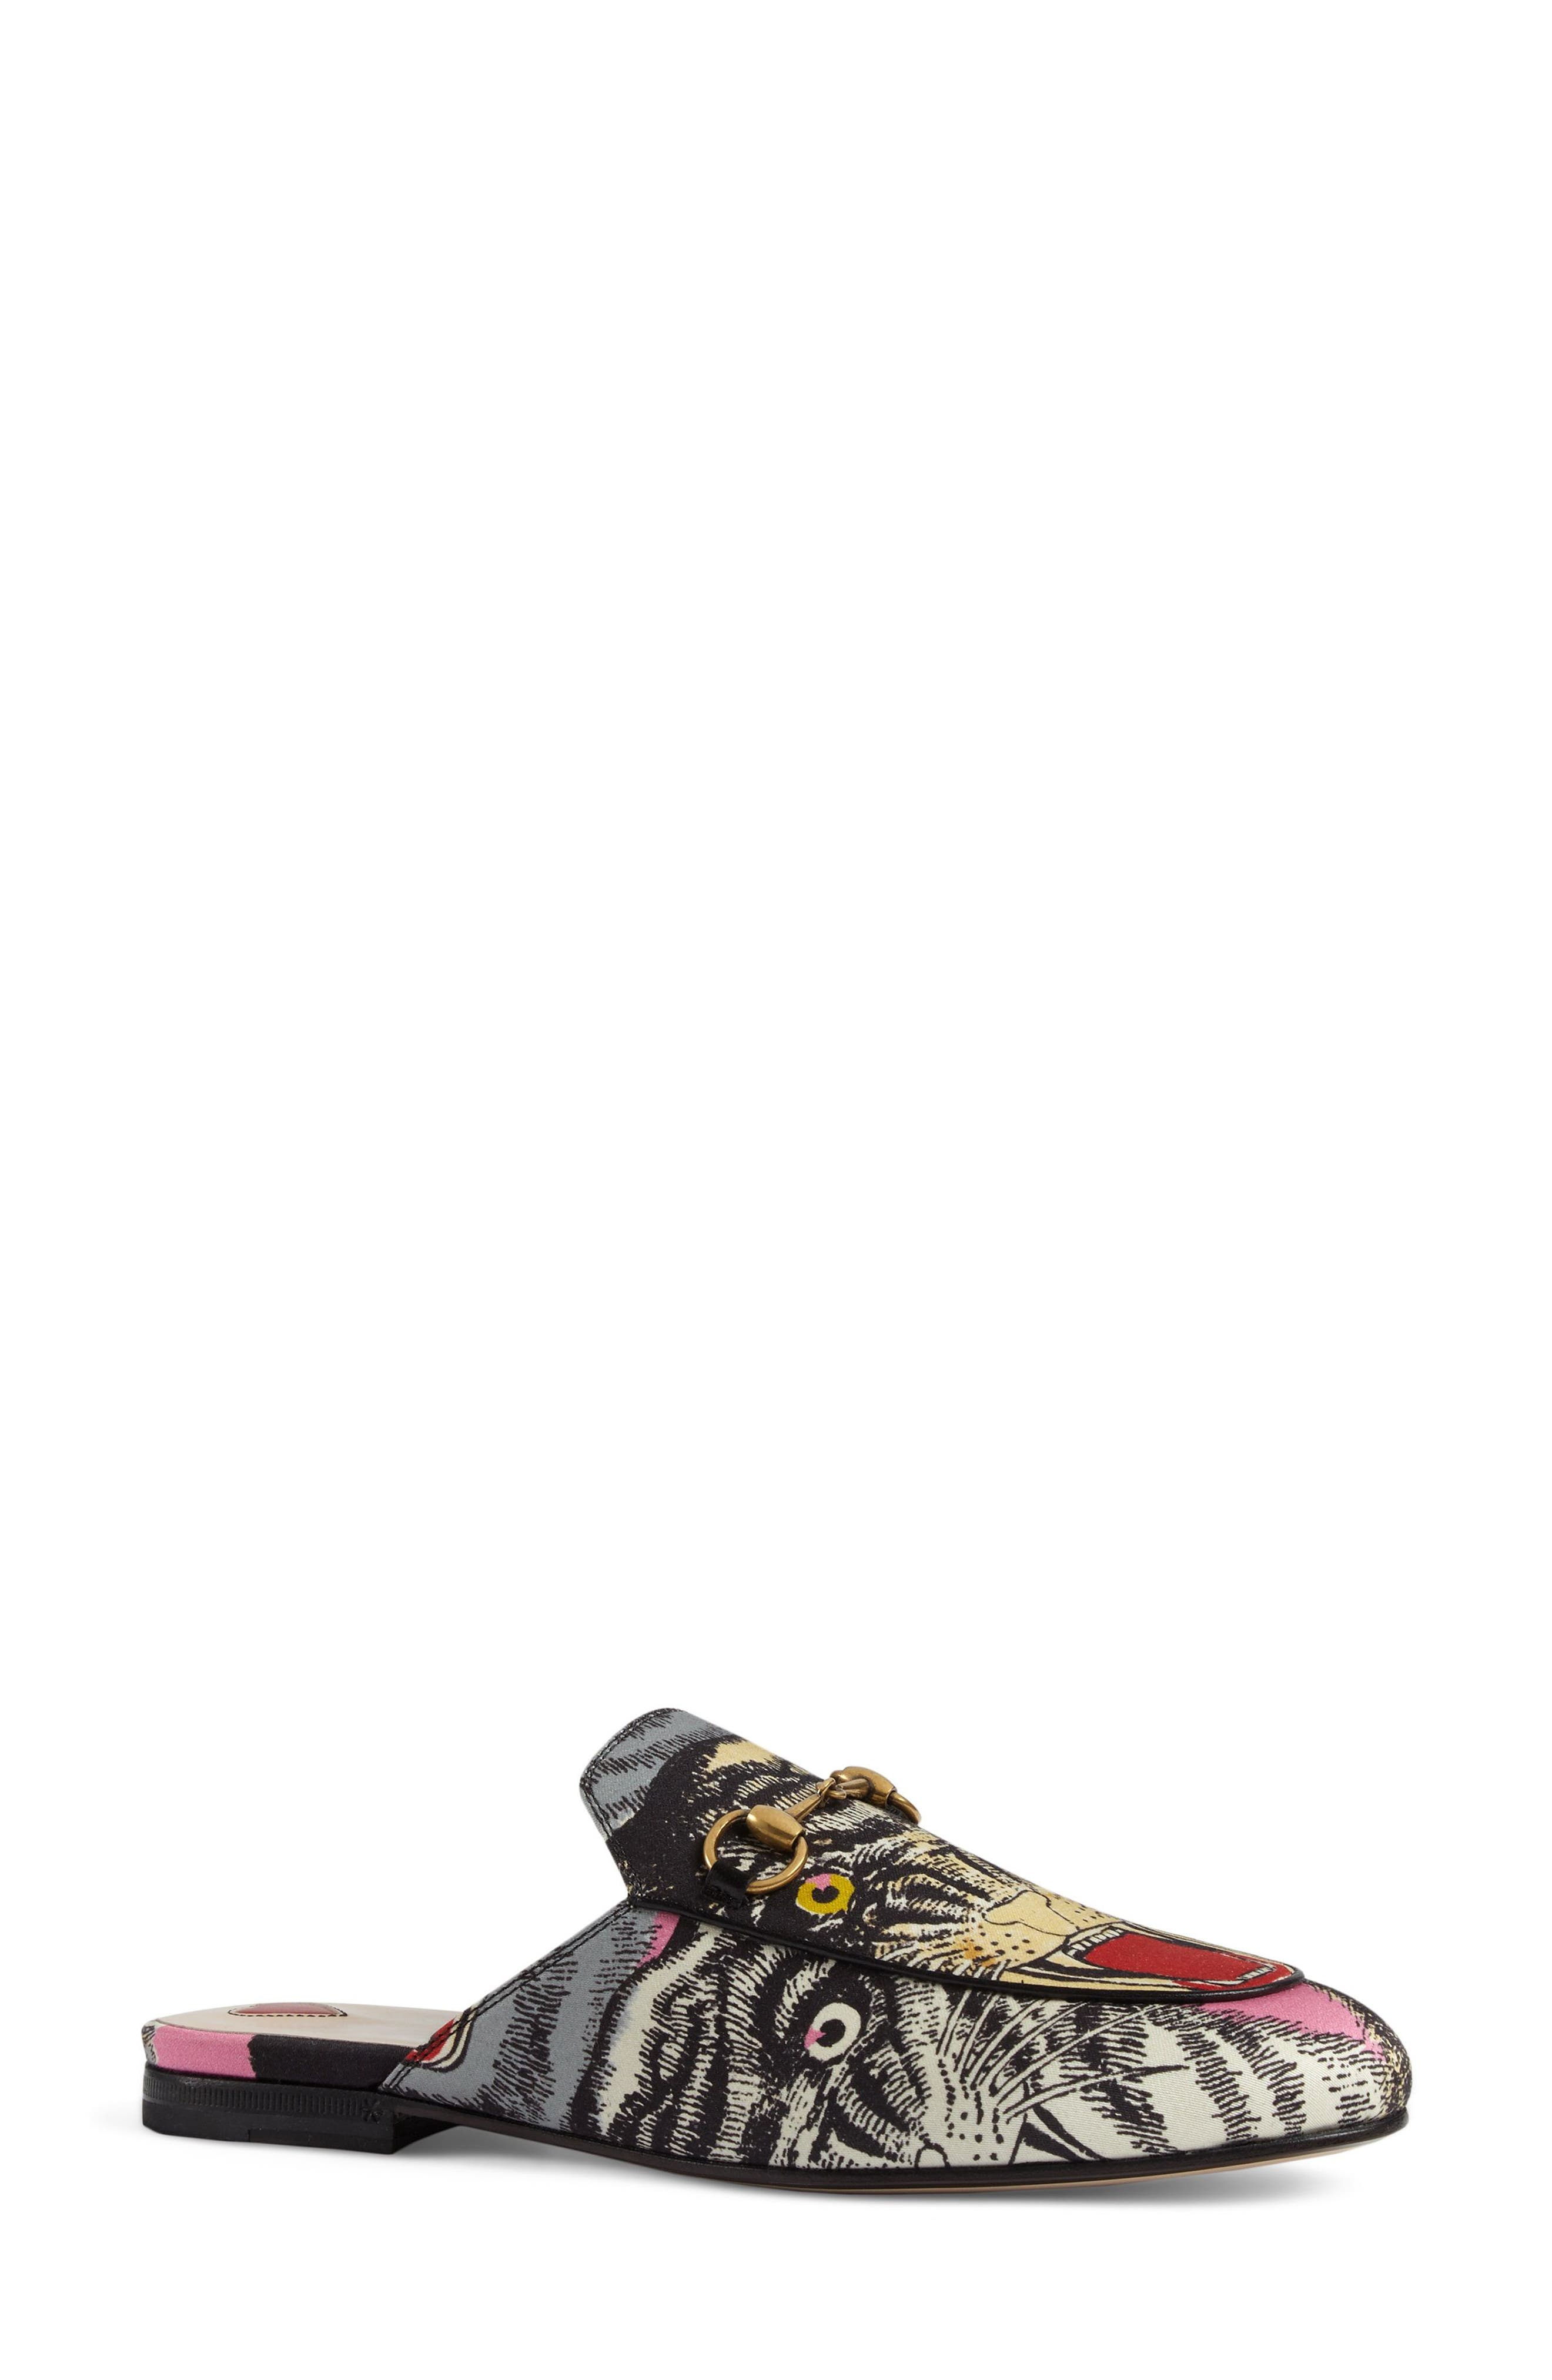 Princetown Angry Cat Mule Loafer,                             Alternate thumbnail 3, color,                             Black Multi